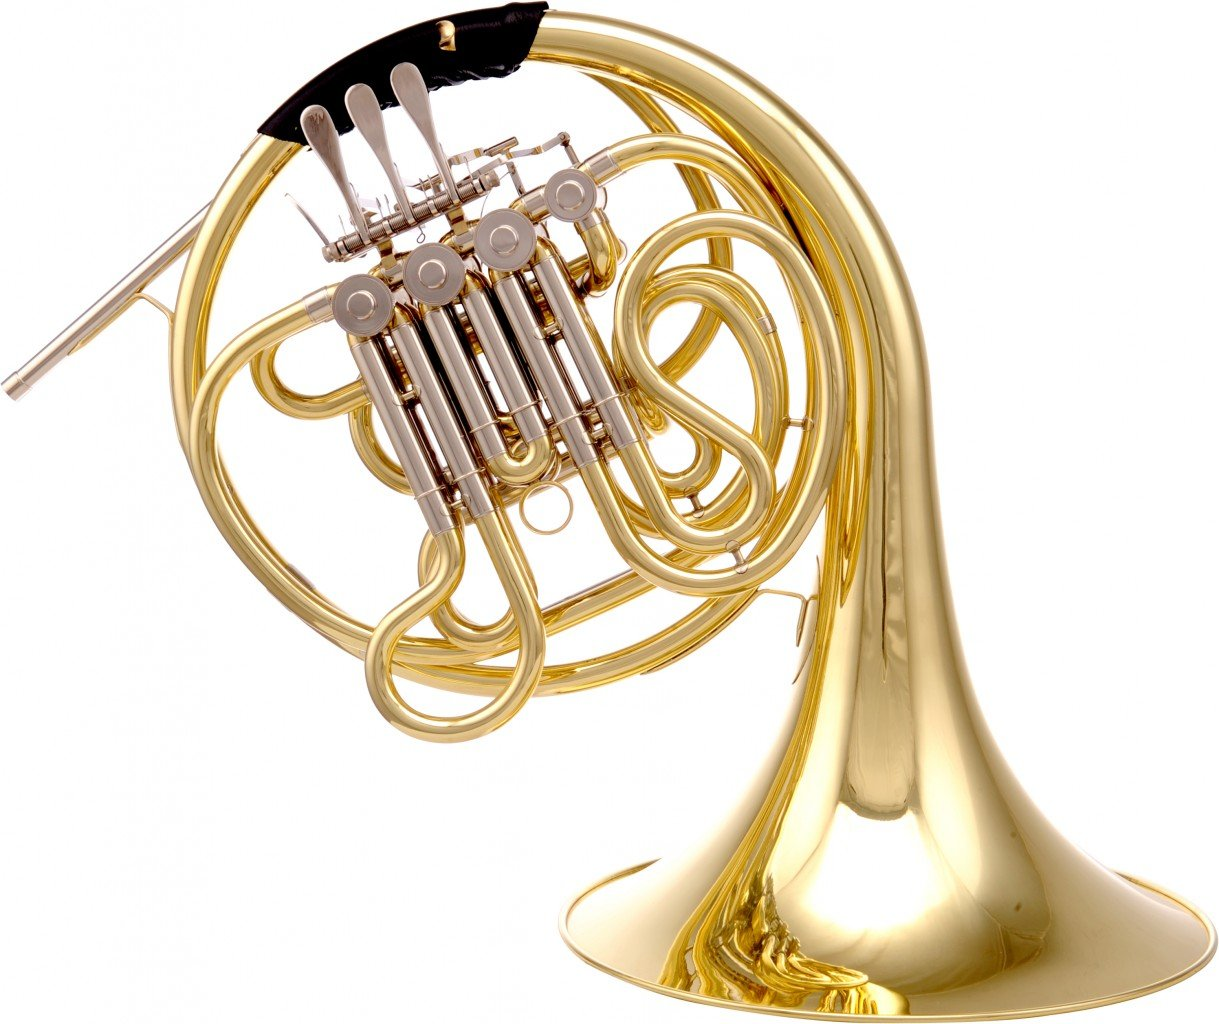 LEVANTE LV-HR4525 F/Bb DOUBLE FRENCH HORN 4 ROTARY VALVES W/CASE